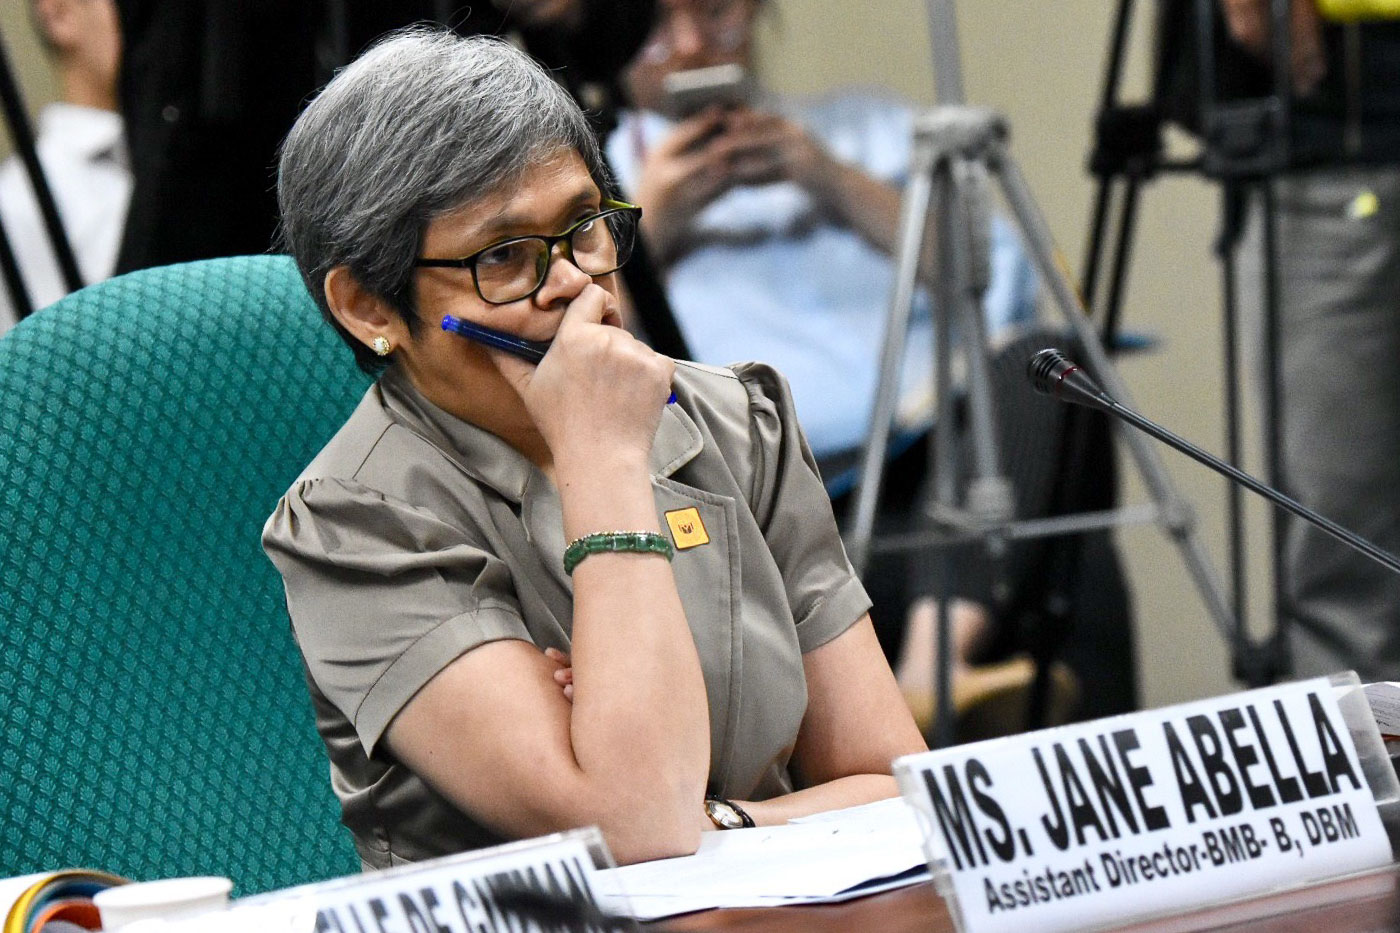 BUDGET DEPARTMENT. Department of Budget and Management Assistant Director Jane Abella answers questions of Sen. Franklin Drilon at the senate budget hearing of the Department of Health. September 17, 2018. Photo by Angie de Silva/Rappler